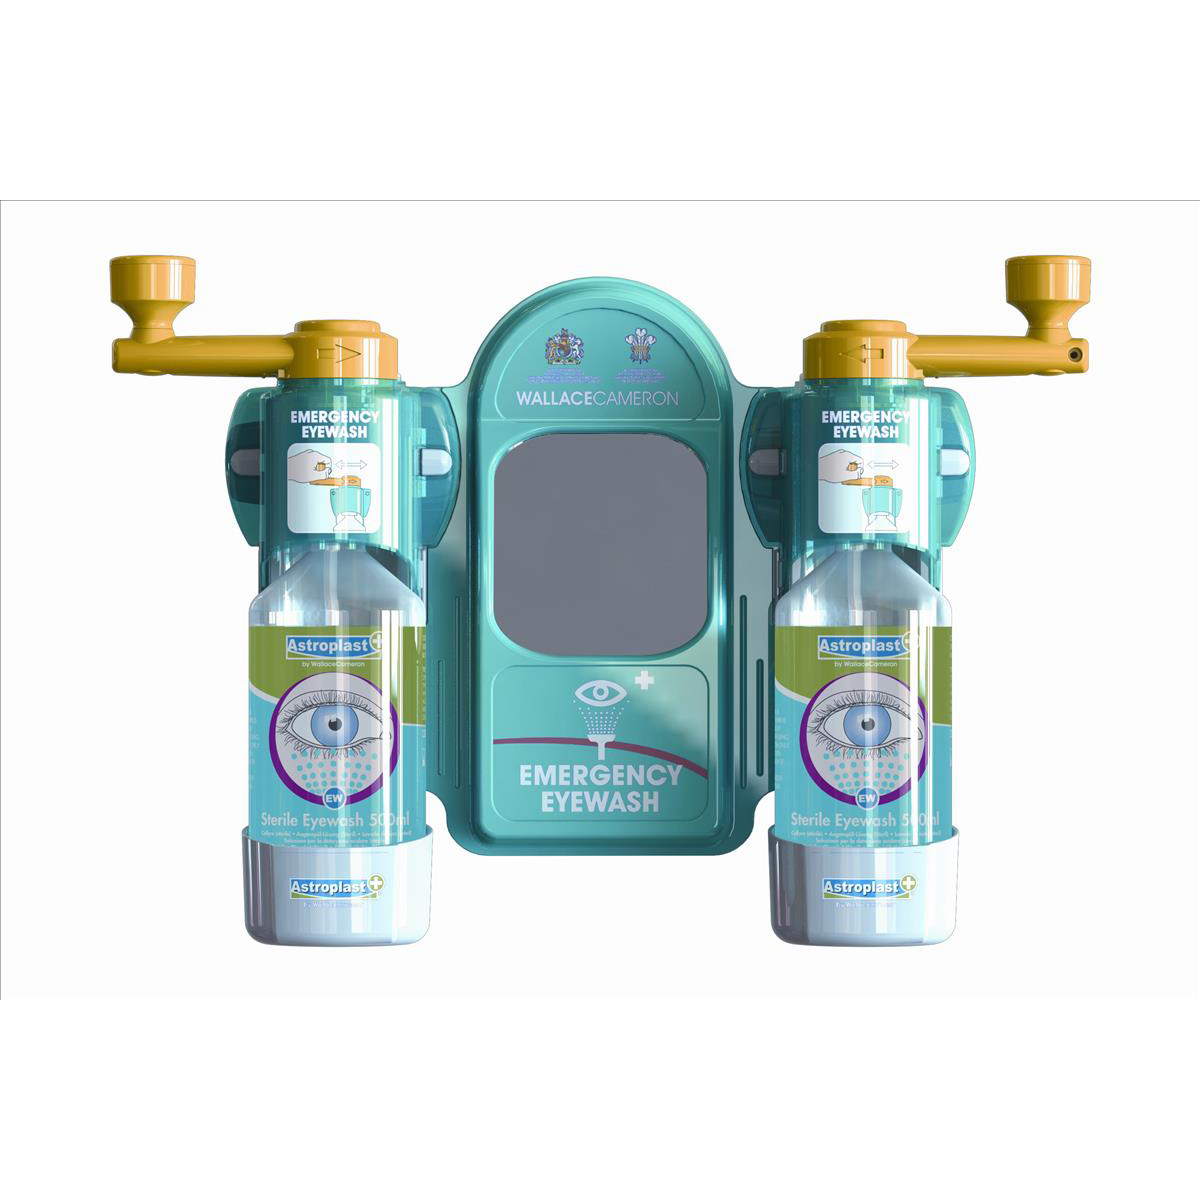 Eyewashers or eye wash stations Wallace Cameron Astroplast Eyewash Station Standard Mirror 2x Eyewash Bottle Ref 2402057